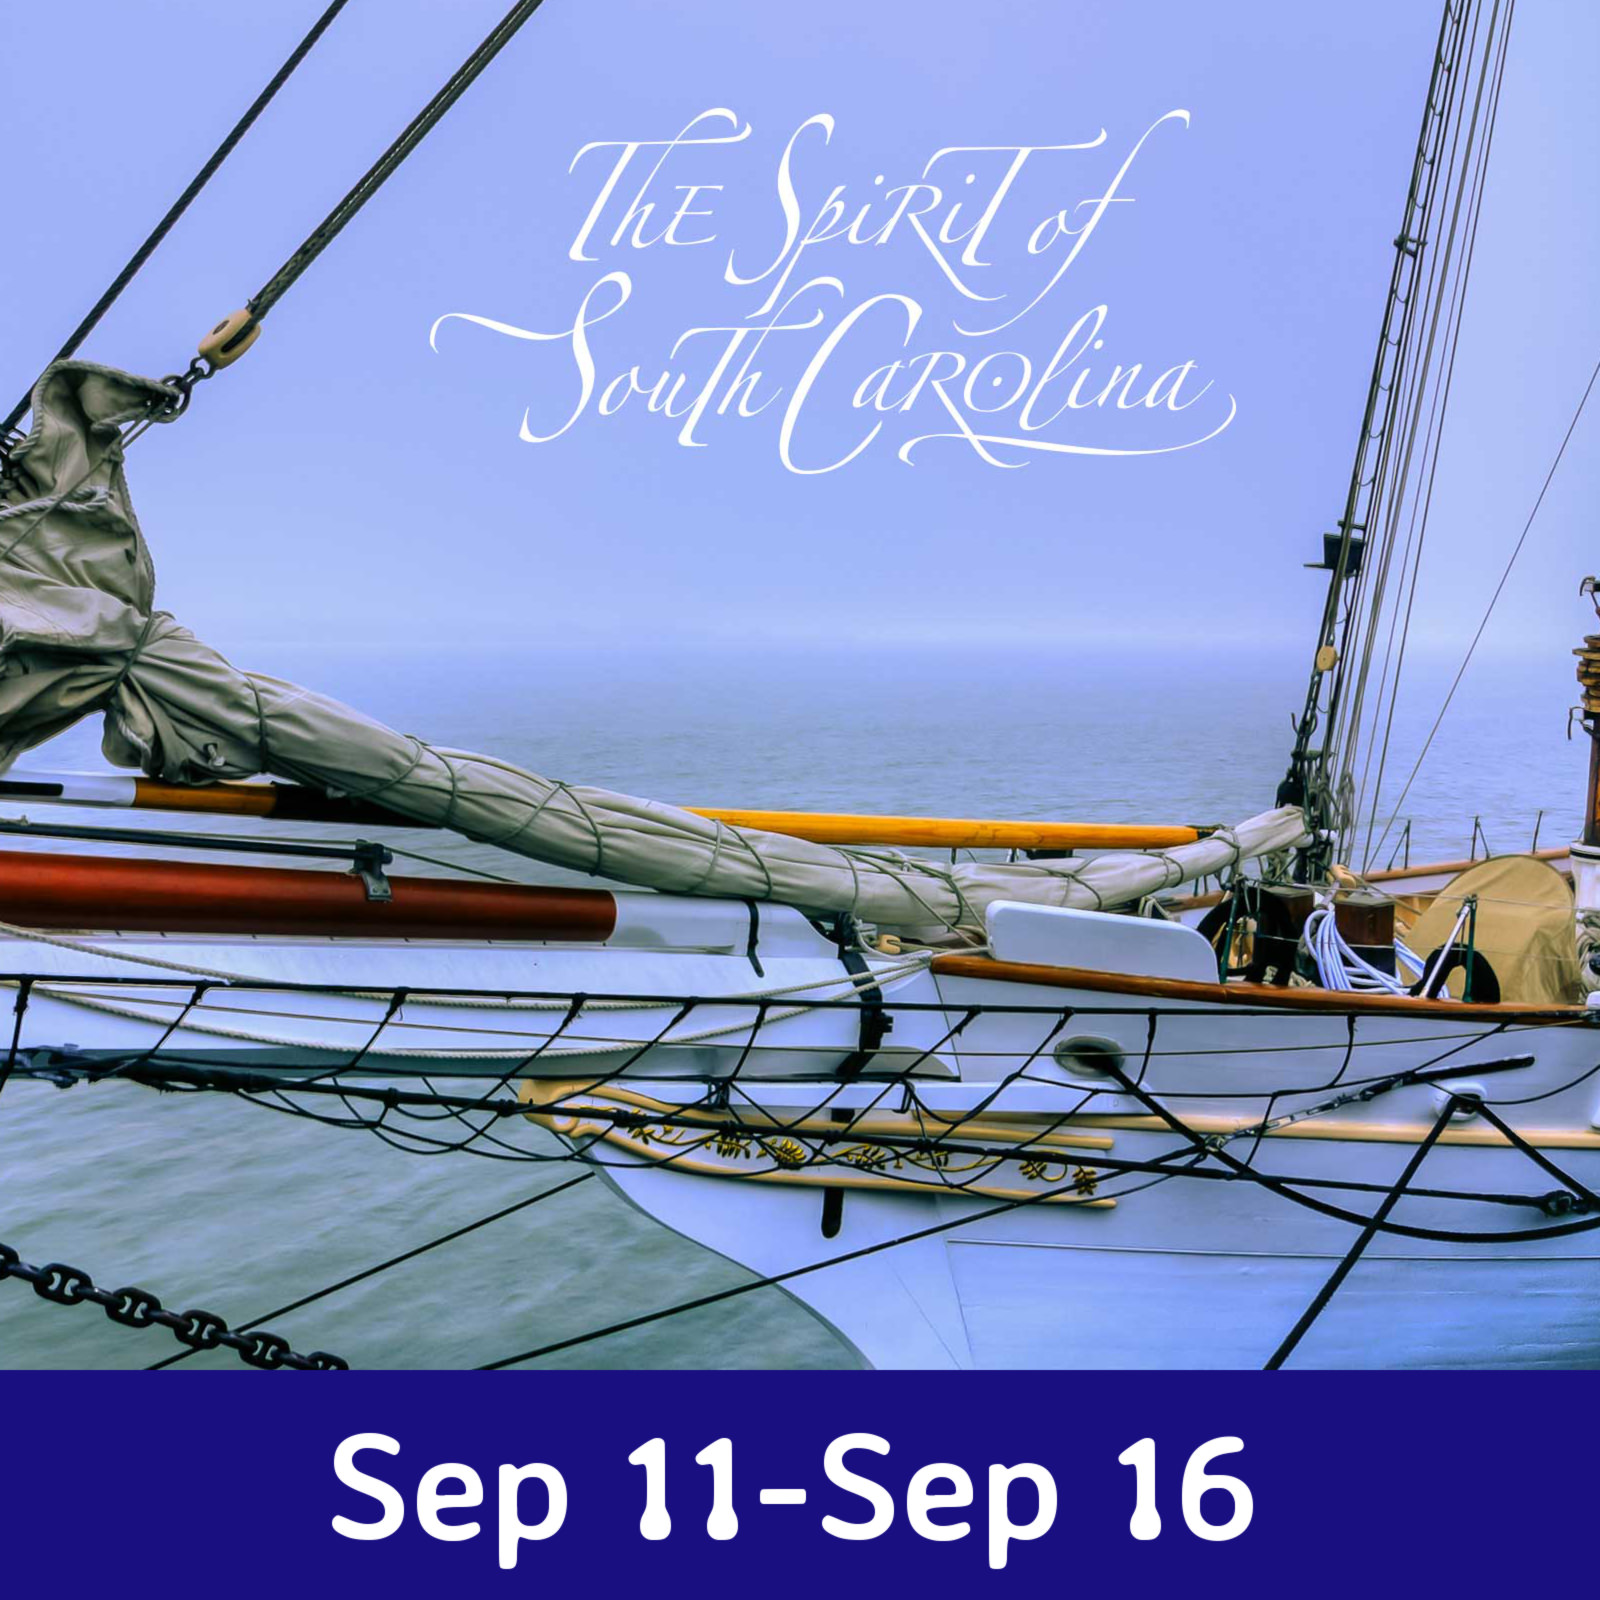 NEW LONDON TO NEWPORT GENERAL ADMISSION ALL AGES Schooner Chandlery